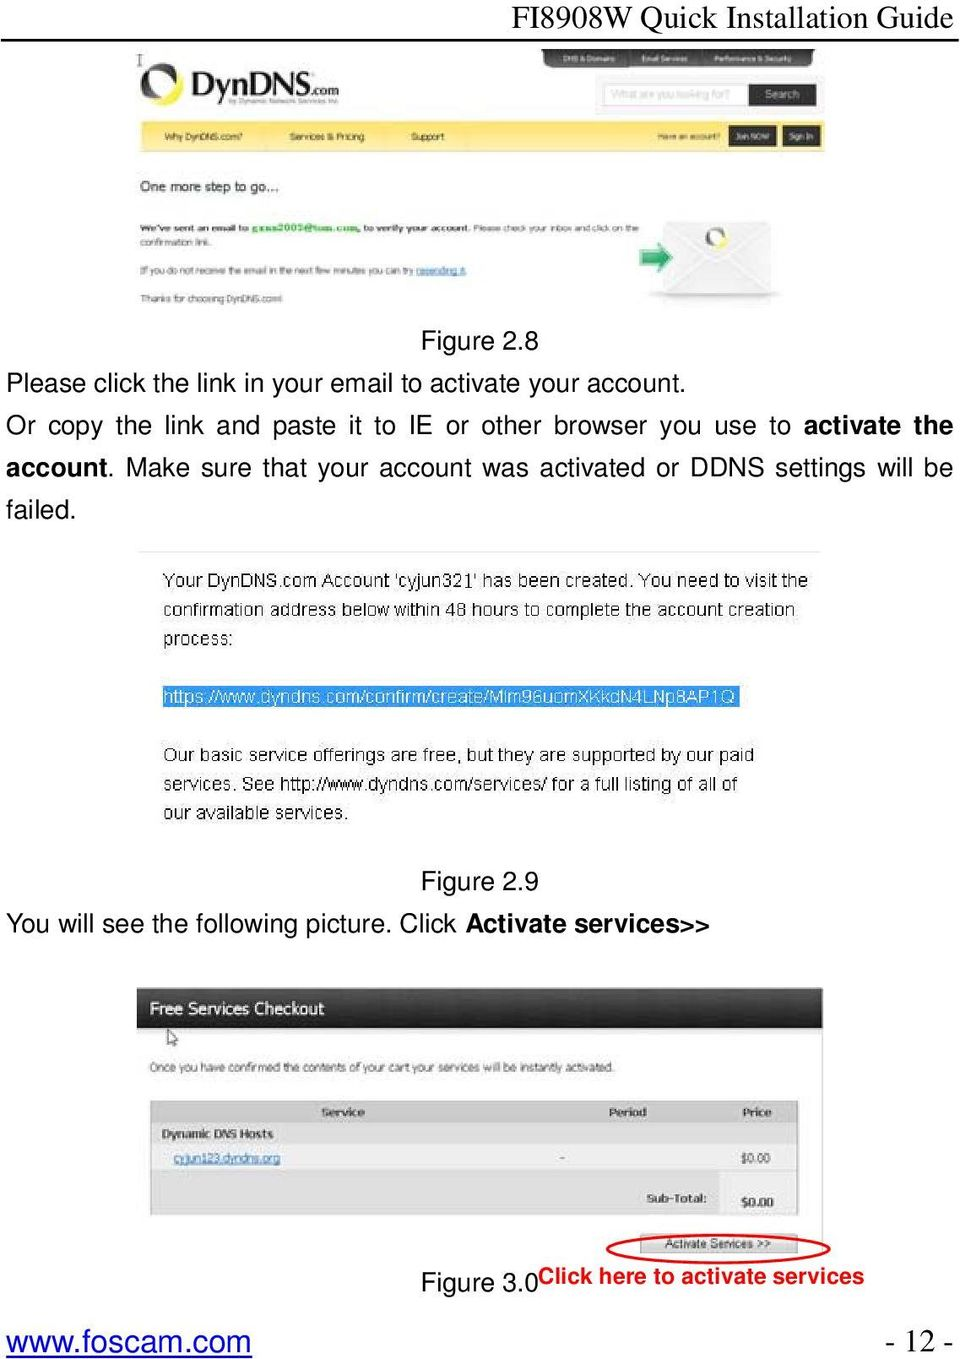 Make sure that your account was activated or DDNS settings will be failed. Figure 2.